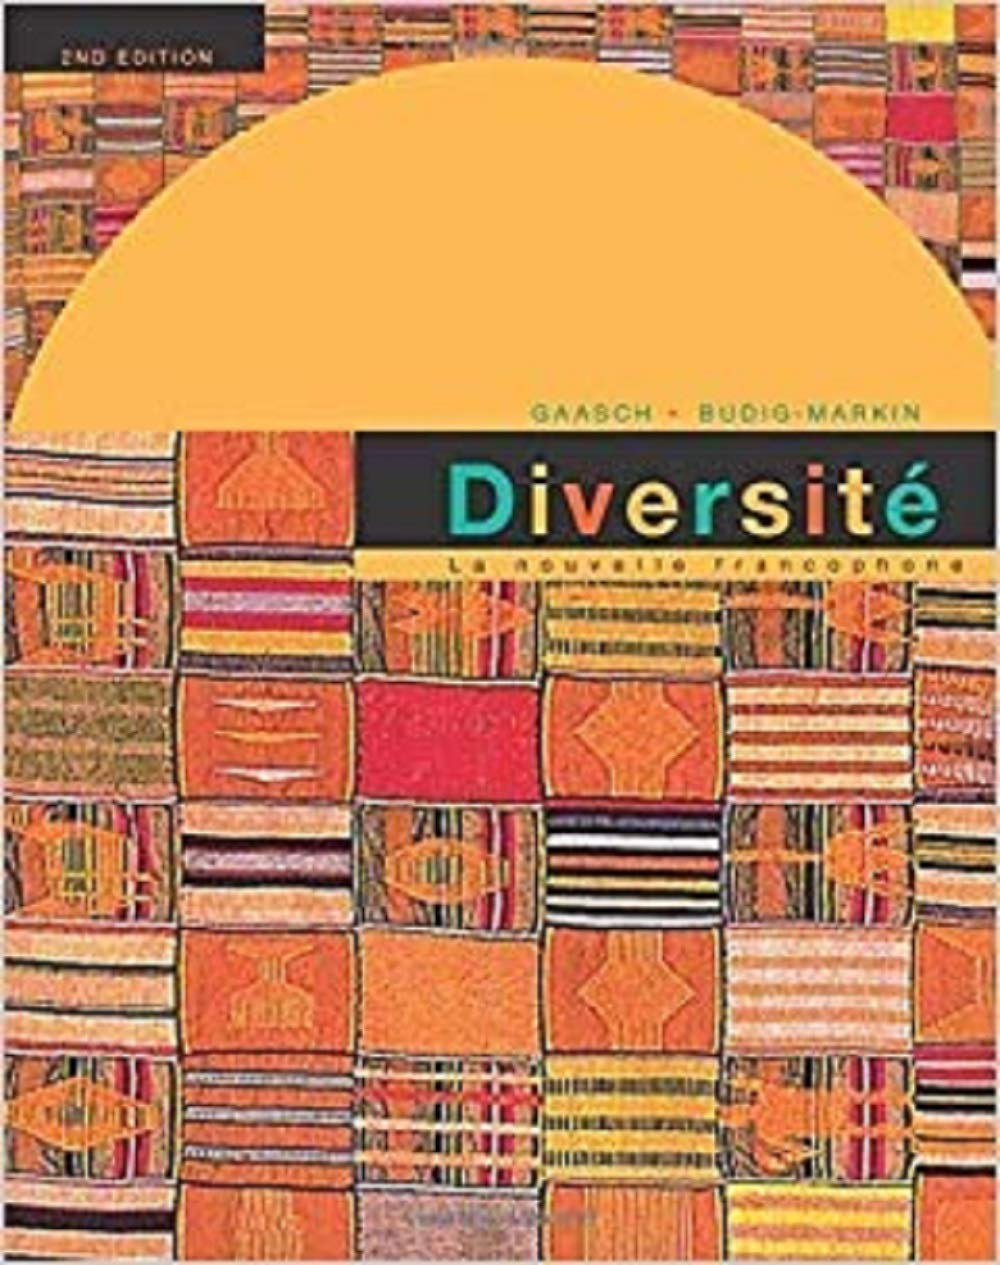 Diversite: La Nouvelle Francophone: An Intermediate Reader and Francophone Anthology, 2nd Edition by Houghton Mifflin Company